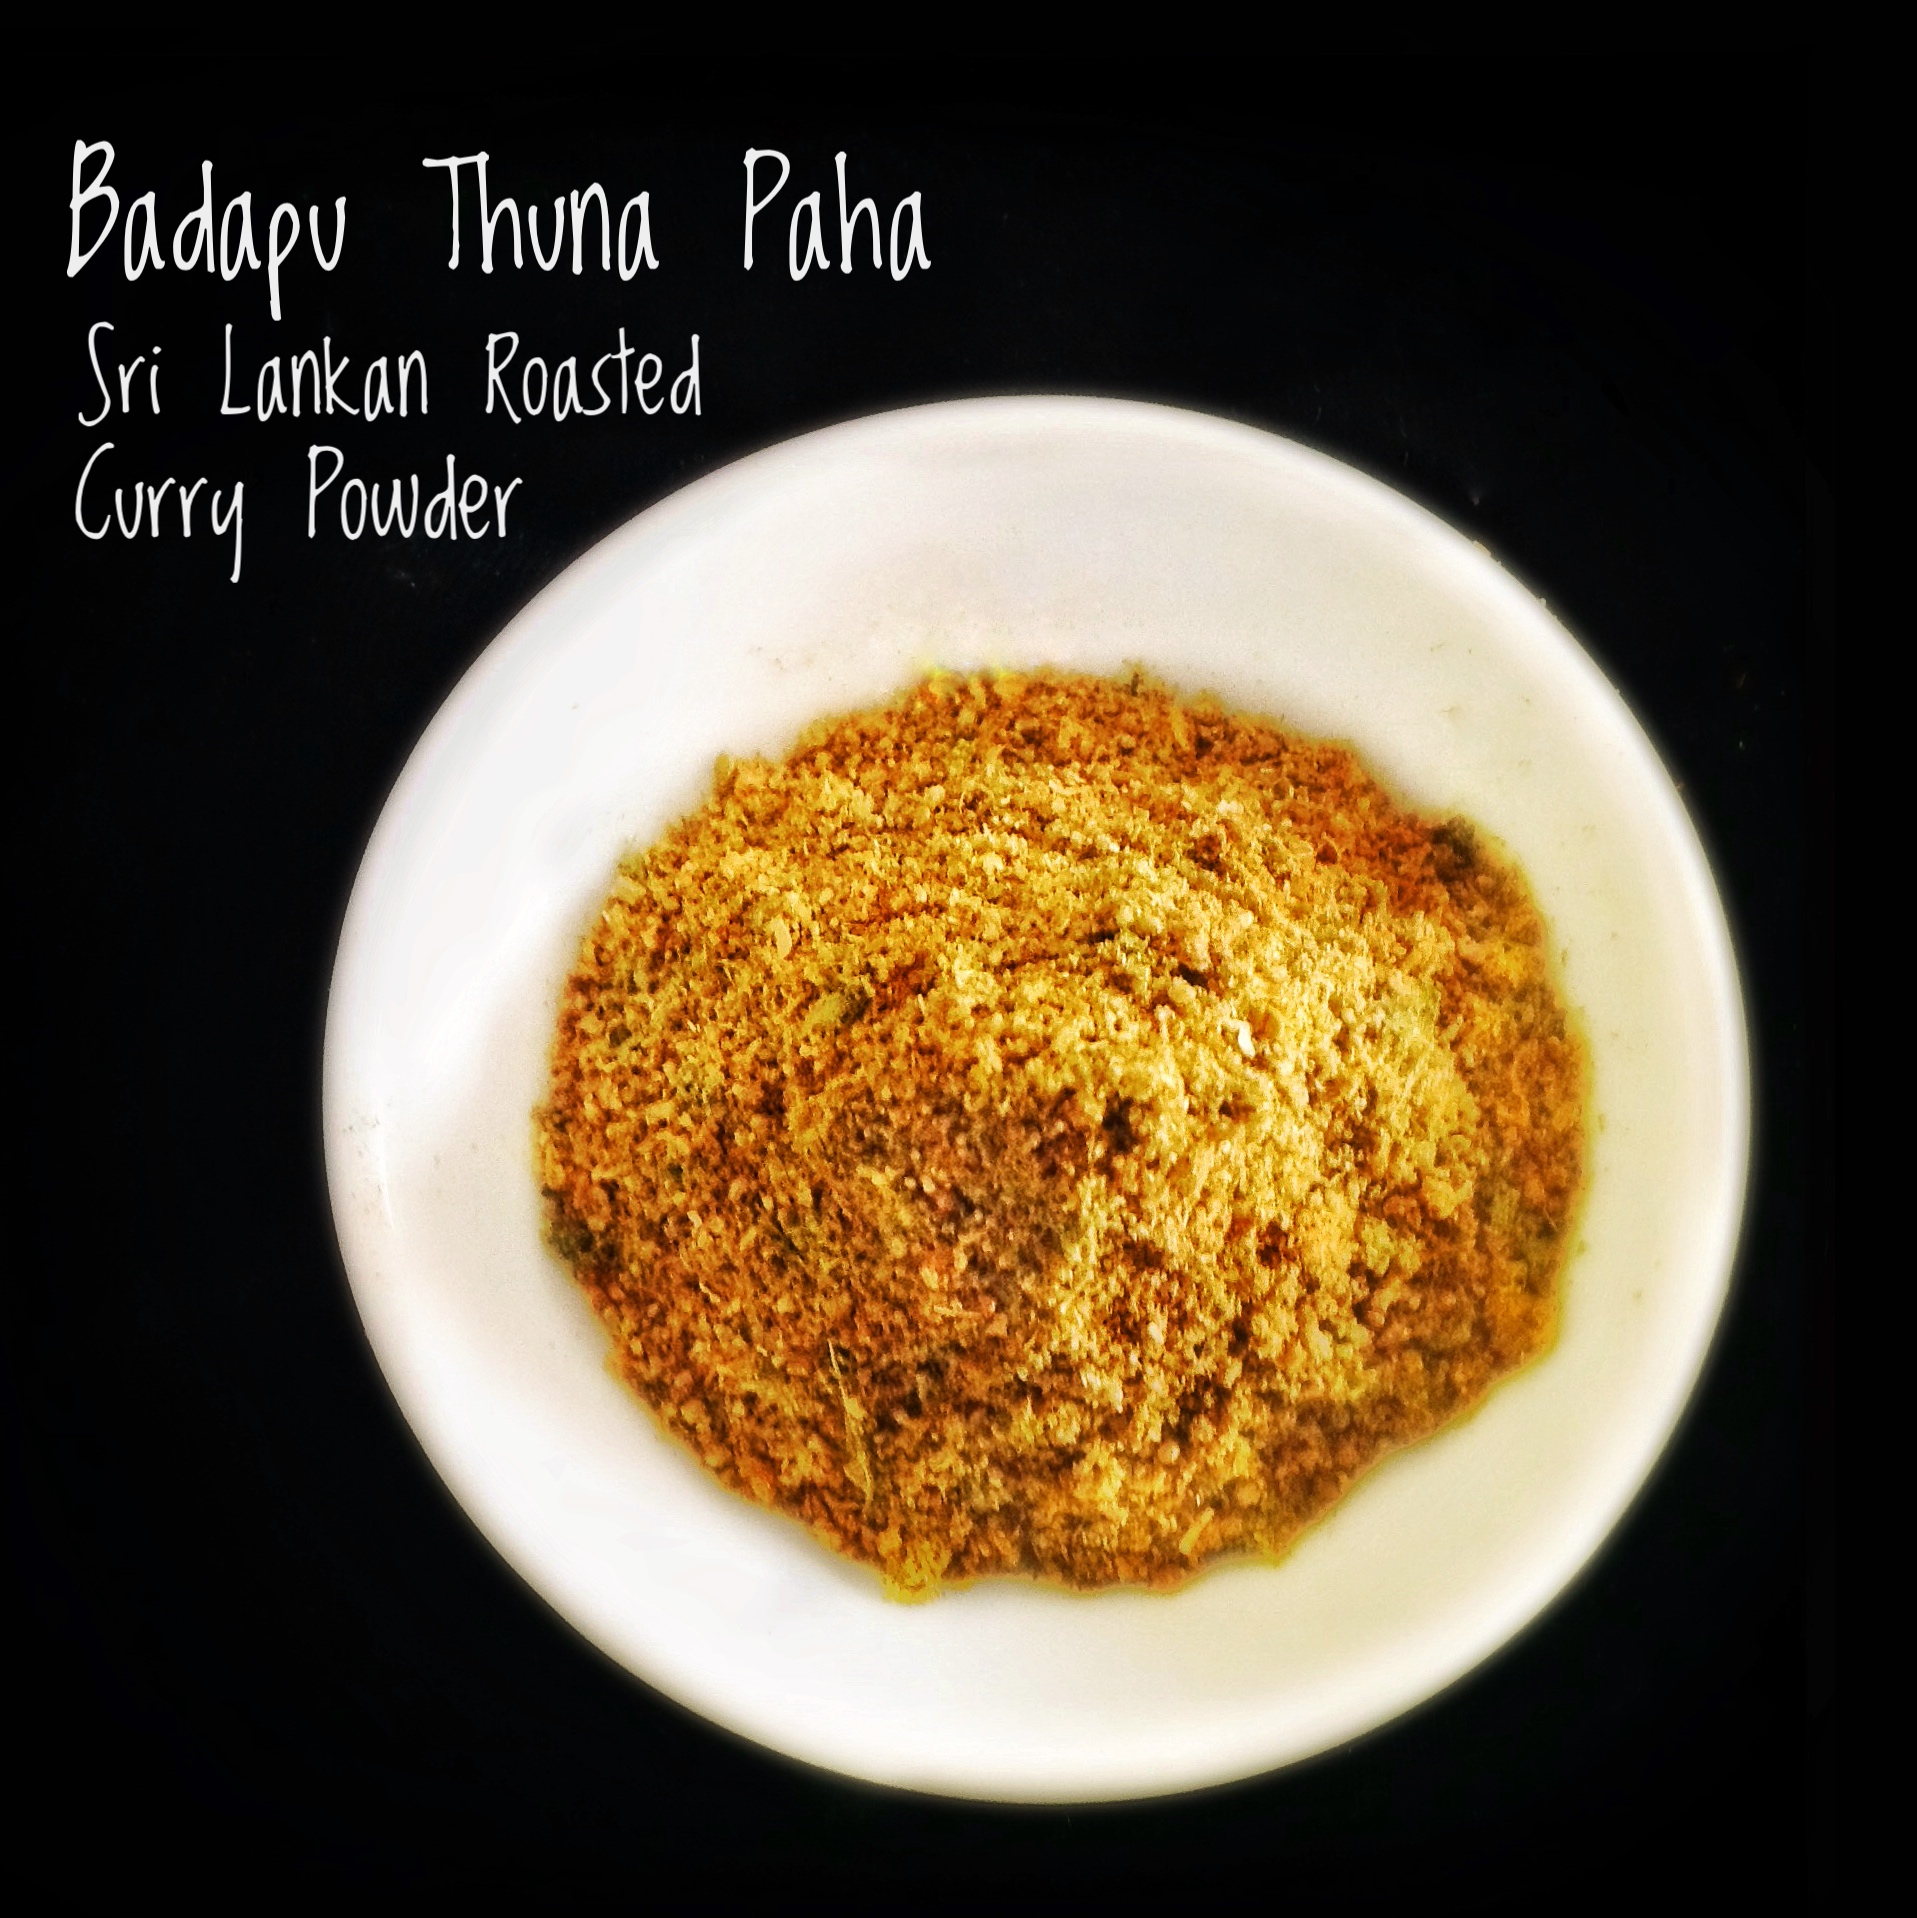 Ingredients: How to Make Singalese Thuna Paha and Badapu Thuna Paha | Sri Lankan 5-Spice Curry Powder